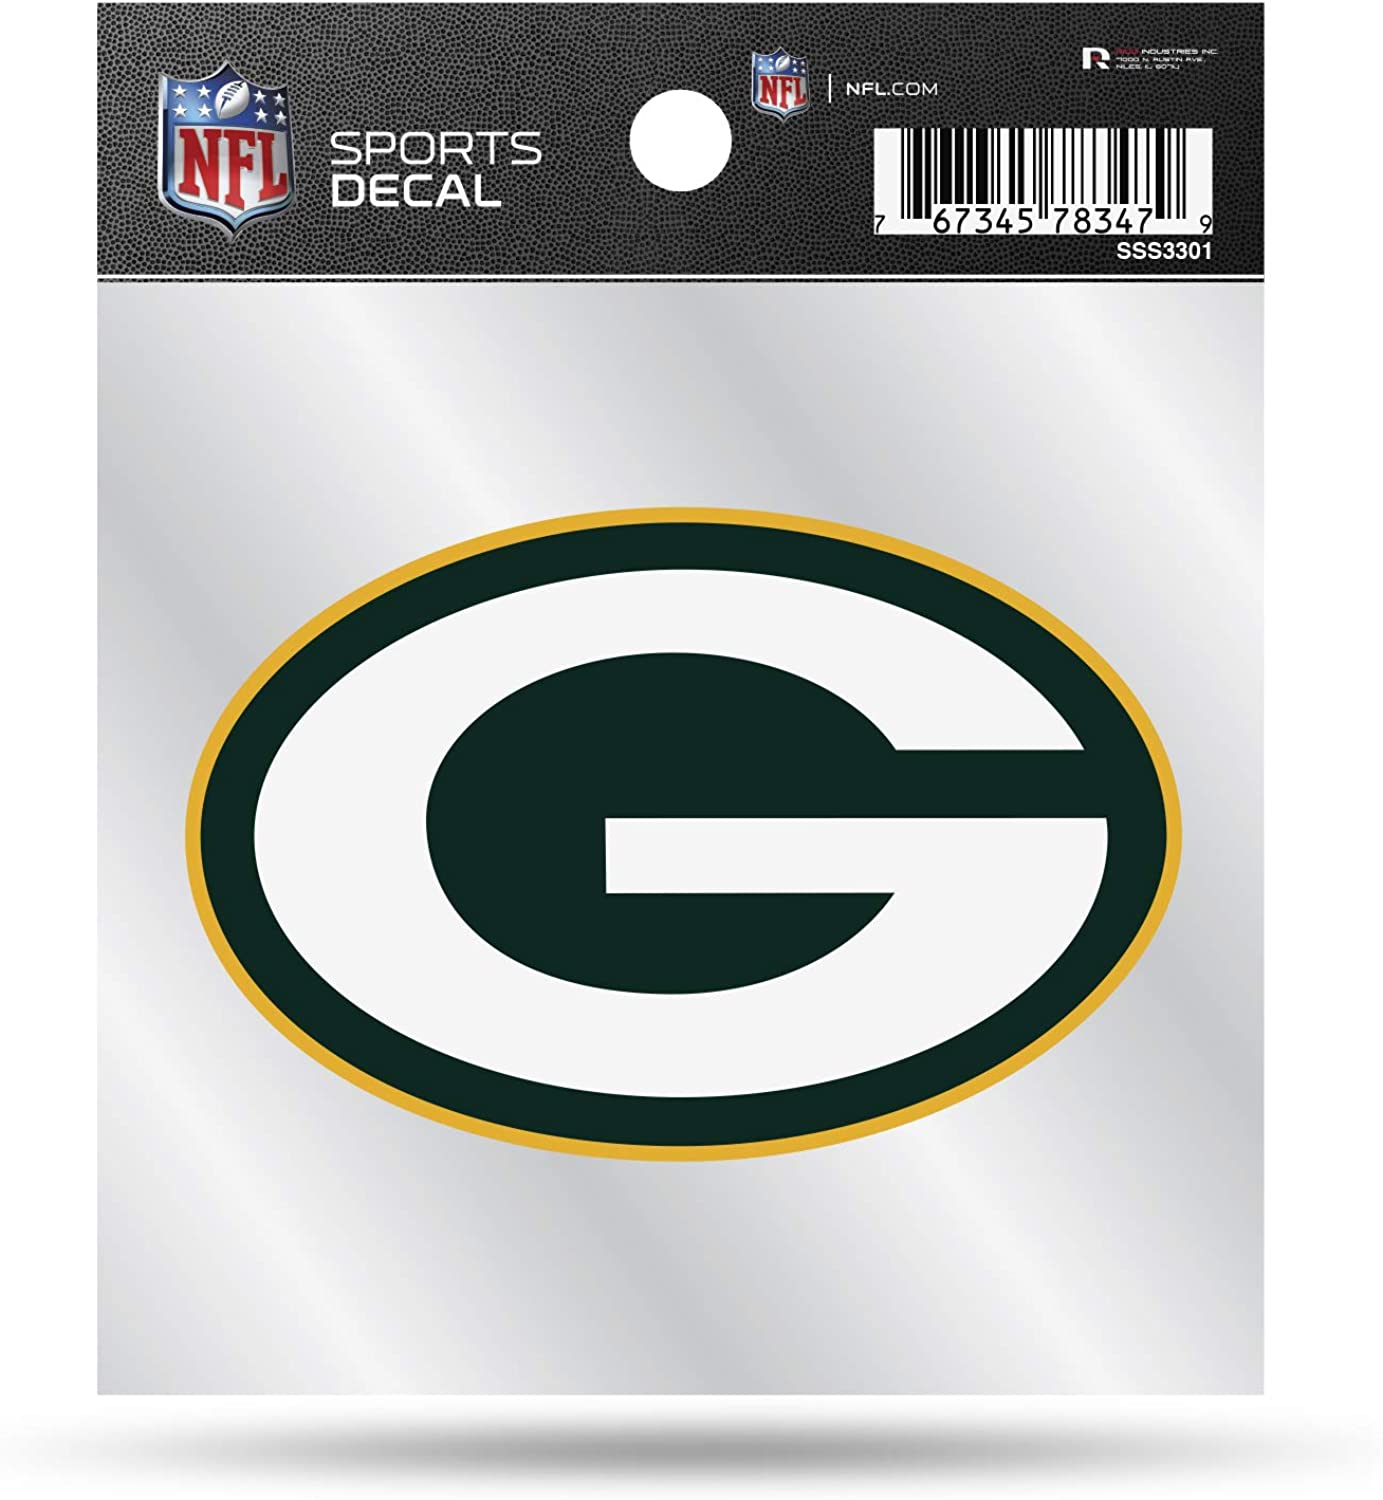 NFL Green Bay Packers Primary Logo 4x4 Decal, Team Color, Size of individual decal will vary